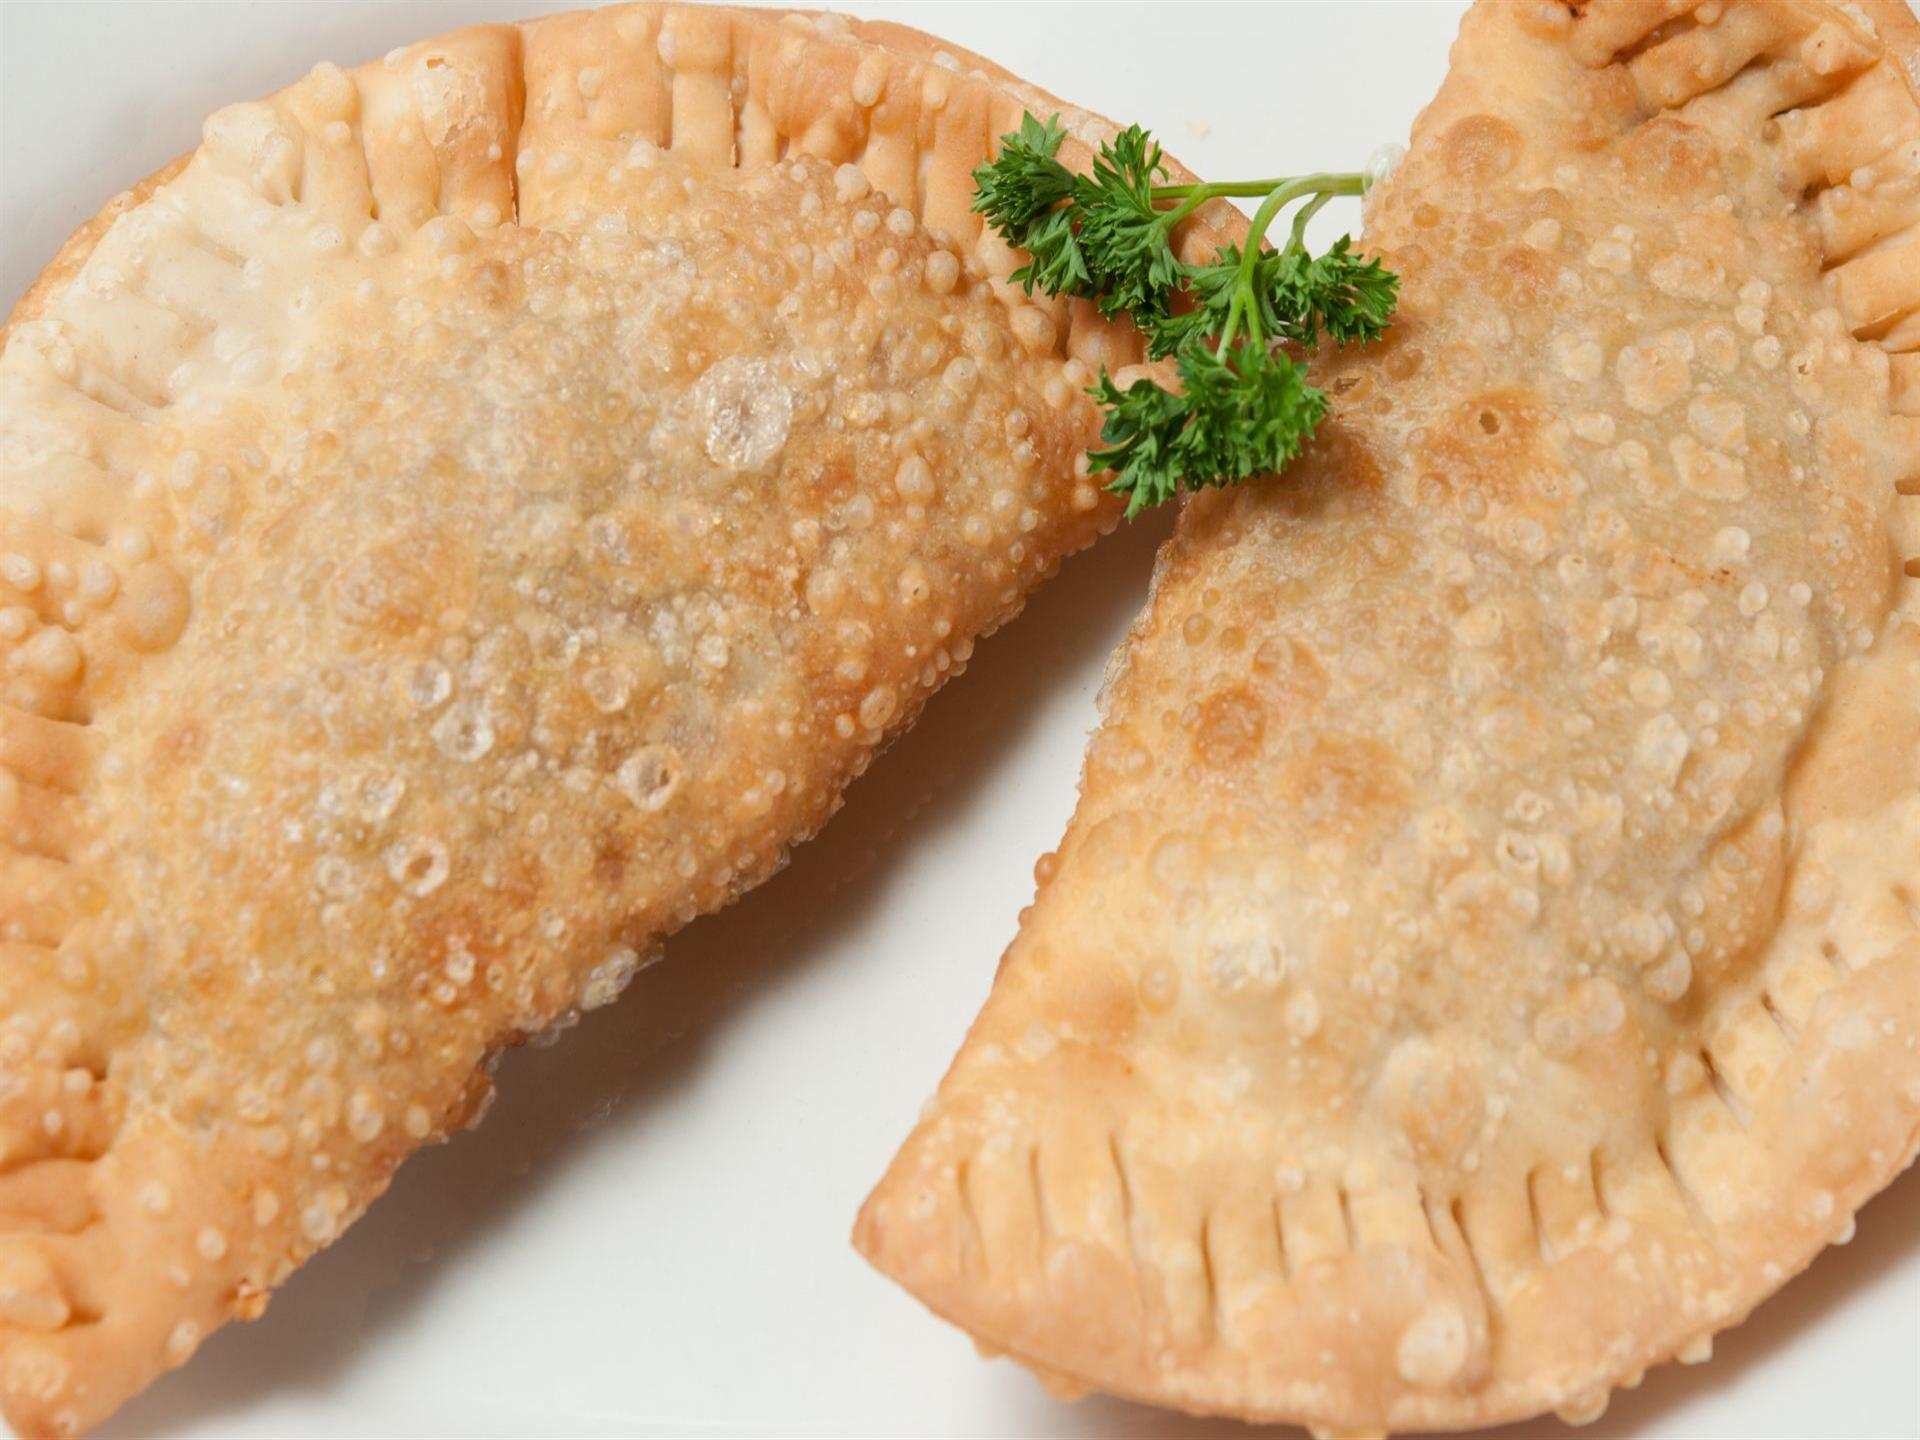 close up of two empanadas on a white plate.